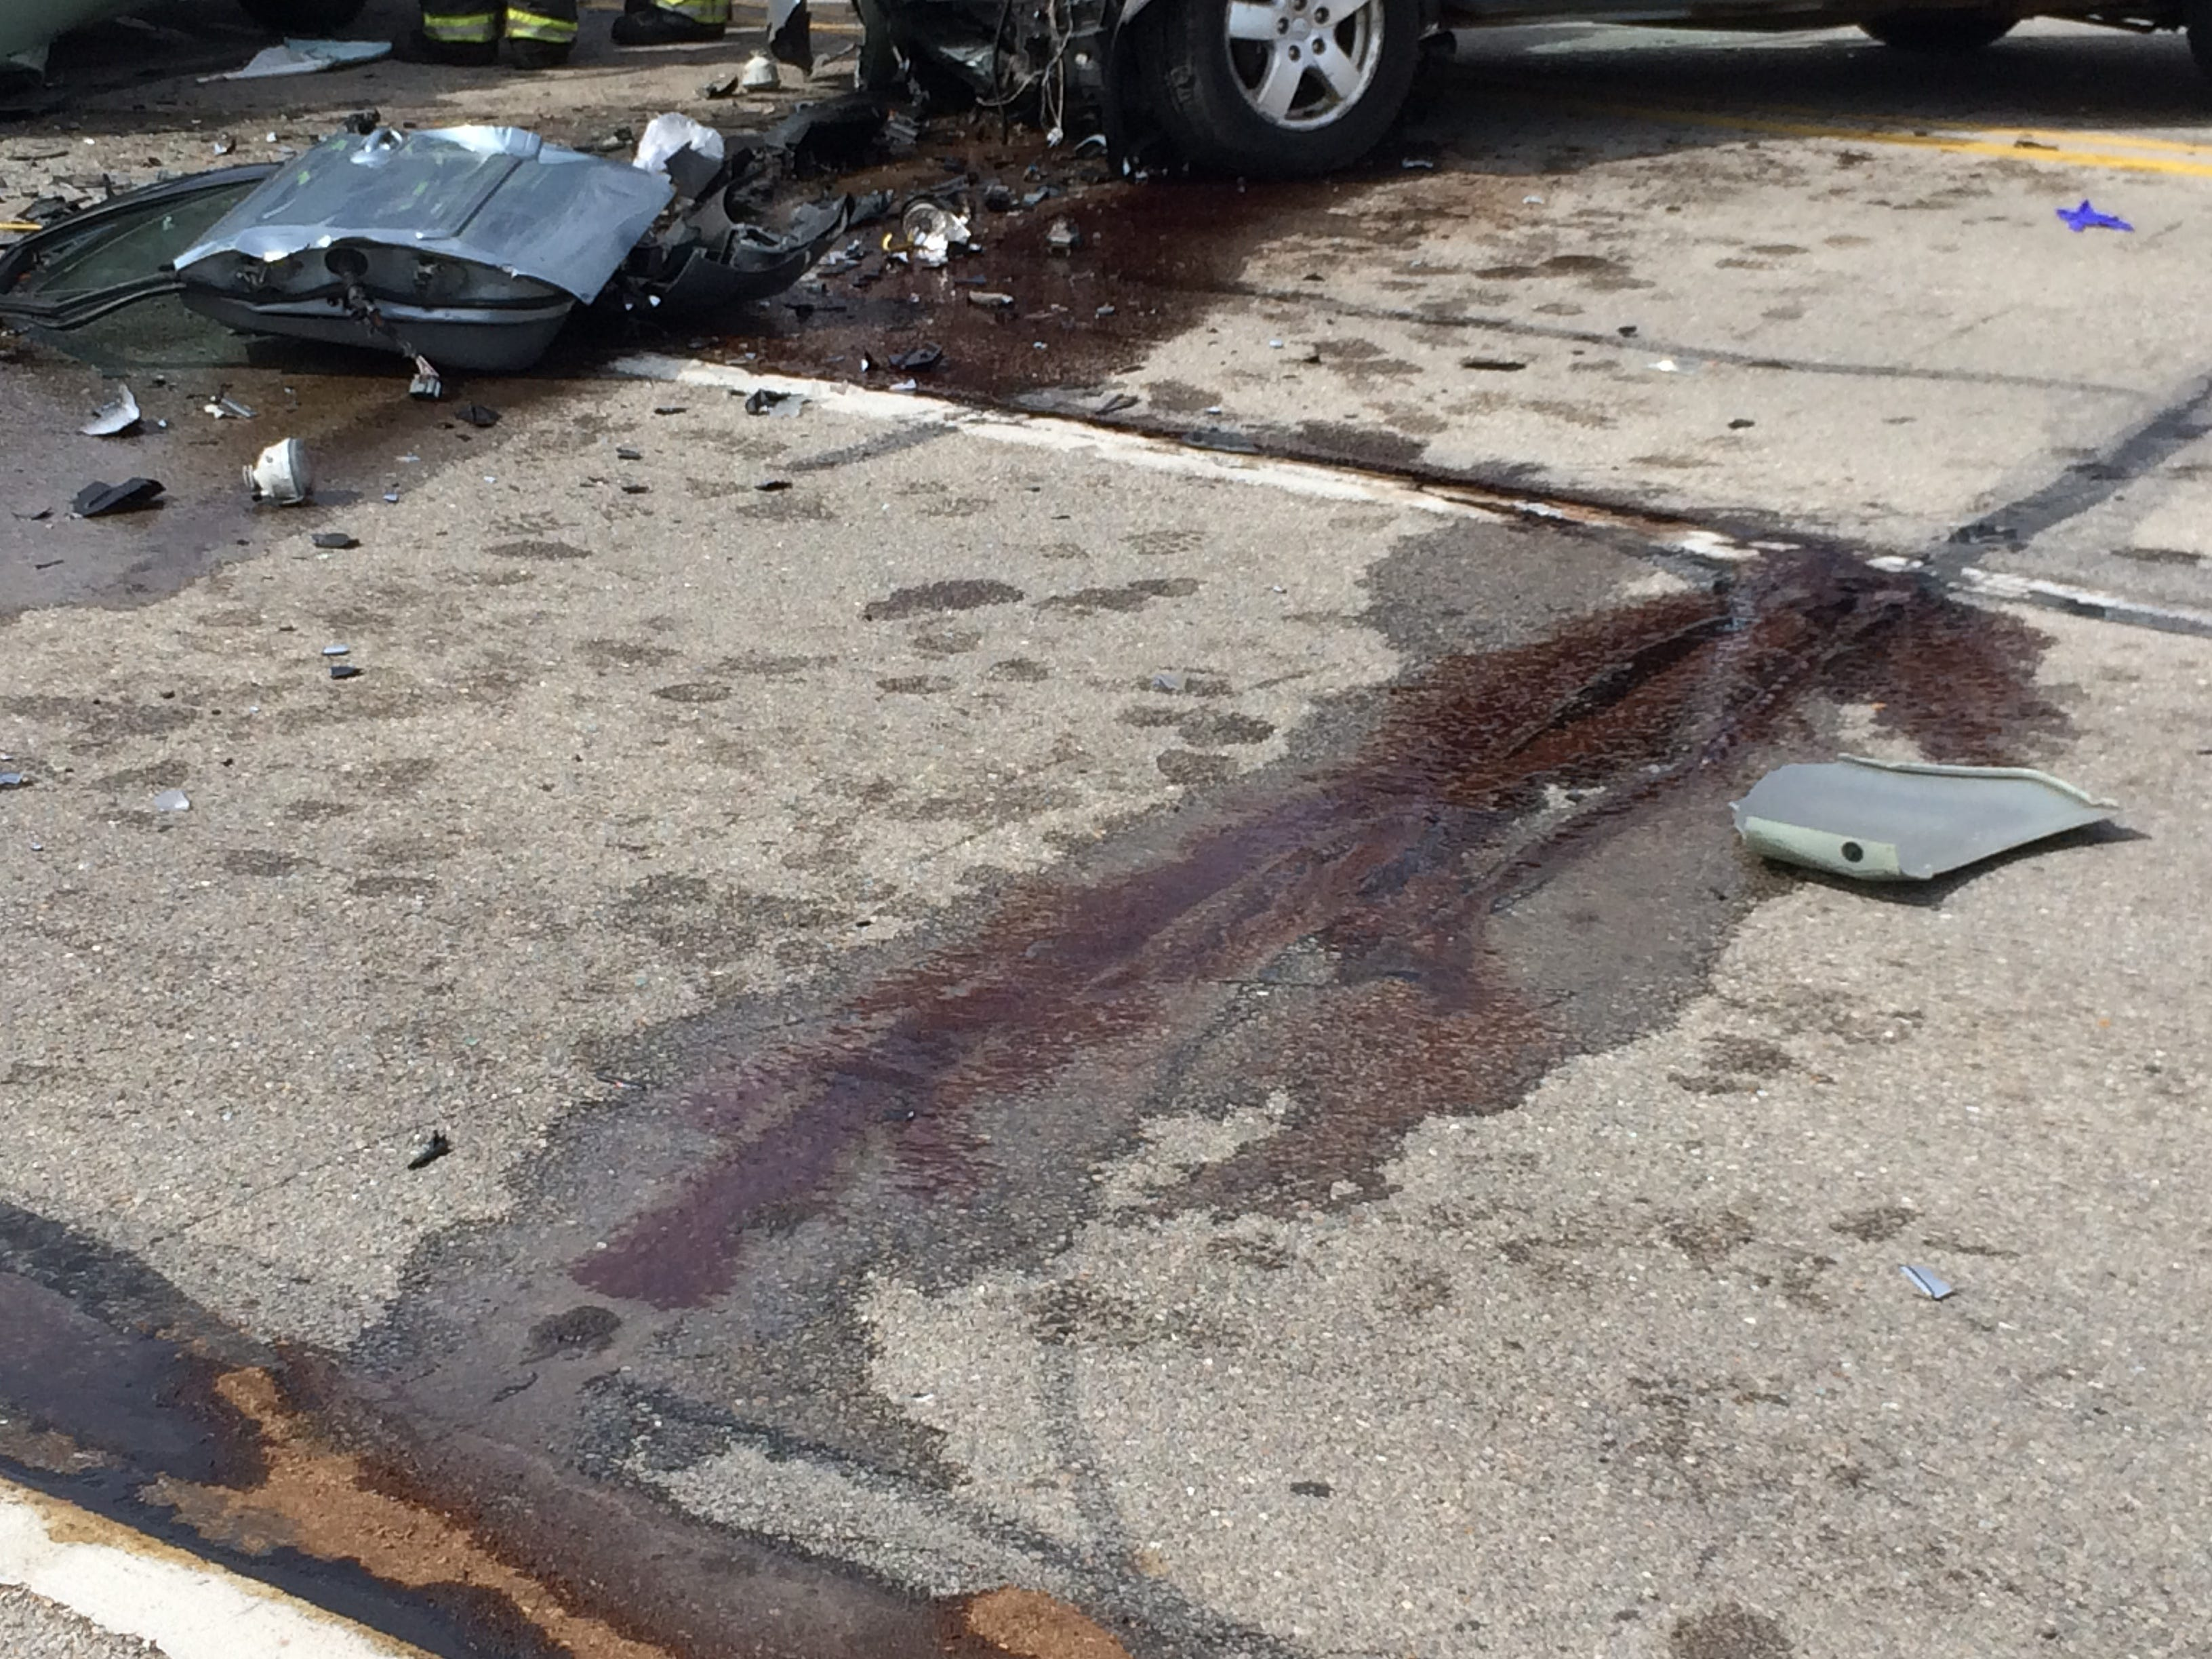 Fluids and debris littered National Road West's eastbound lanes Tuesday afternoon after an accident in the 3900 block.